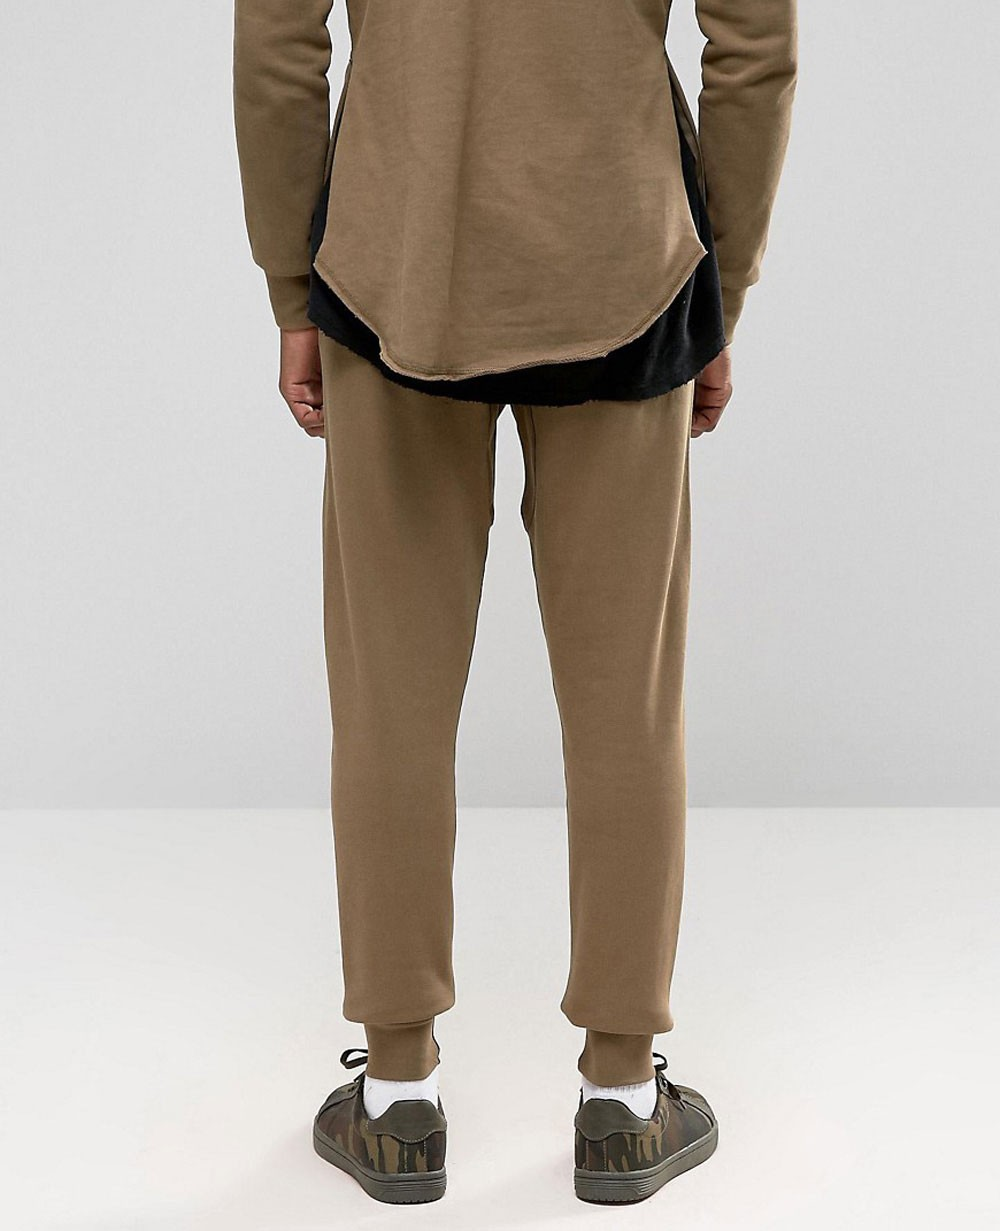 Whether you need pants for the gym or for your day off, you won't find a better selection of ultra-comfortable men's sweatpants than here at Jimmy Jazz.